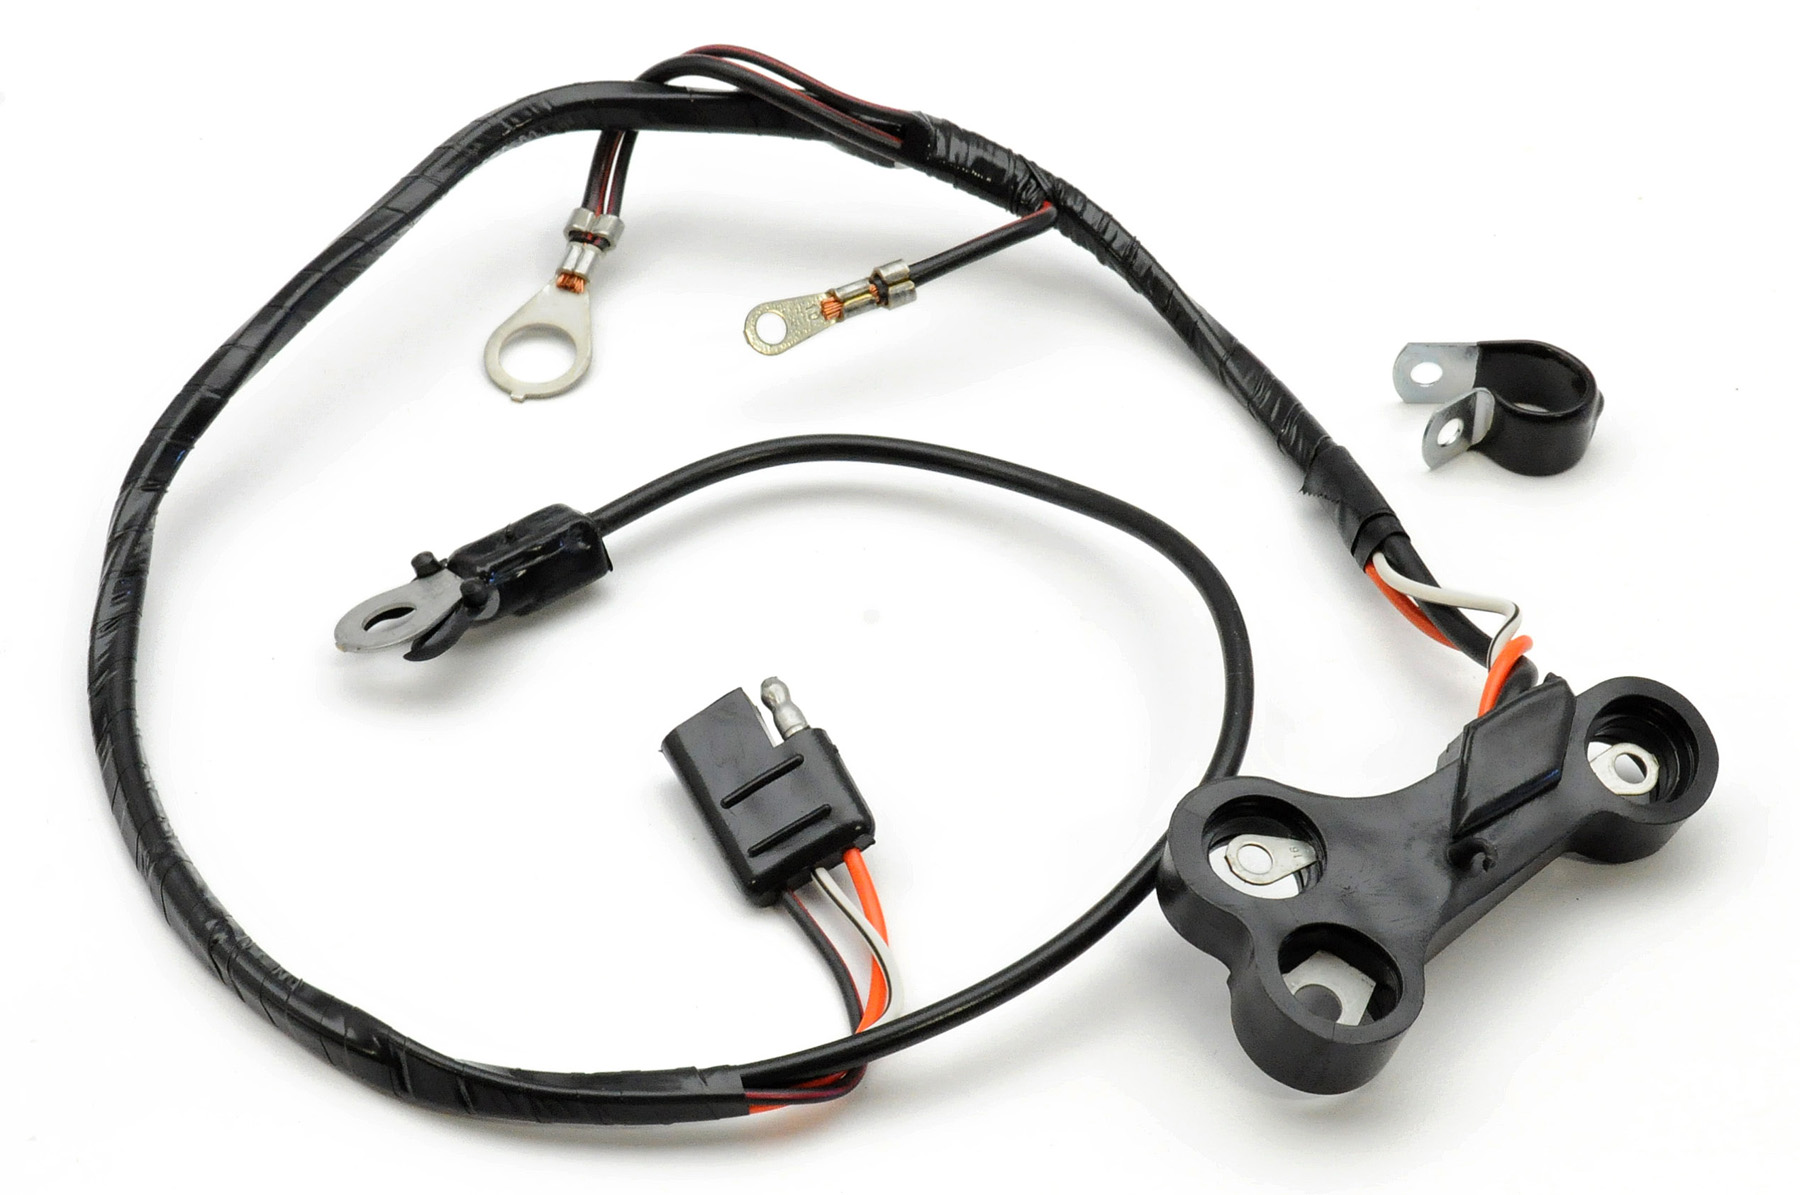 Wiring Harness Alternator : Critter creek cougar restorations alternator wiring harness